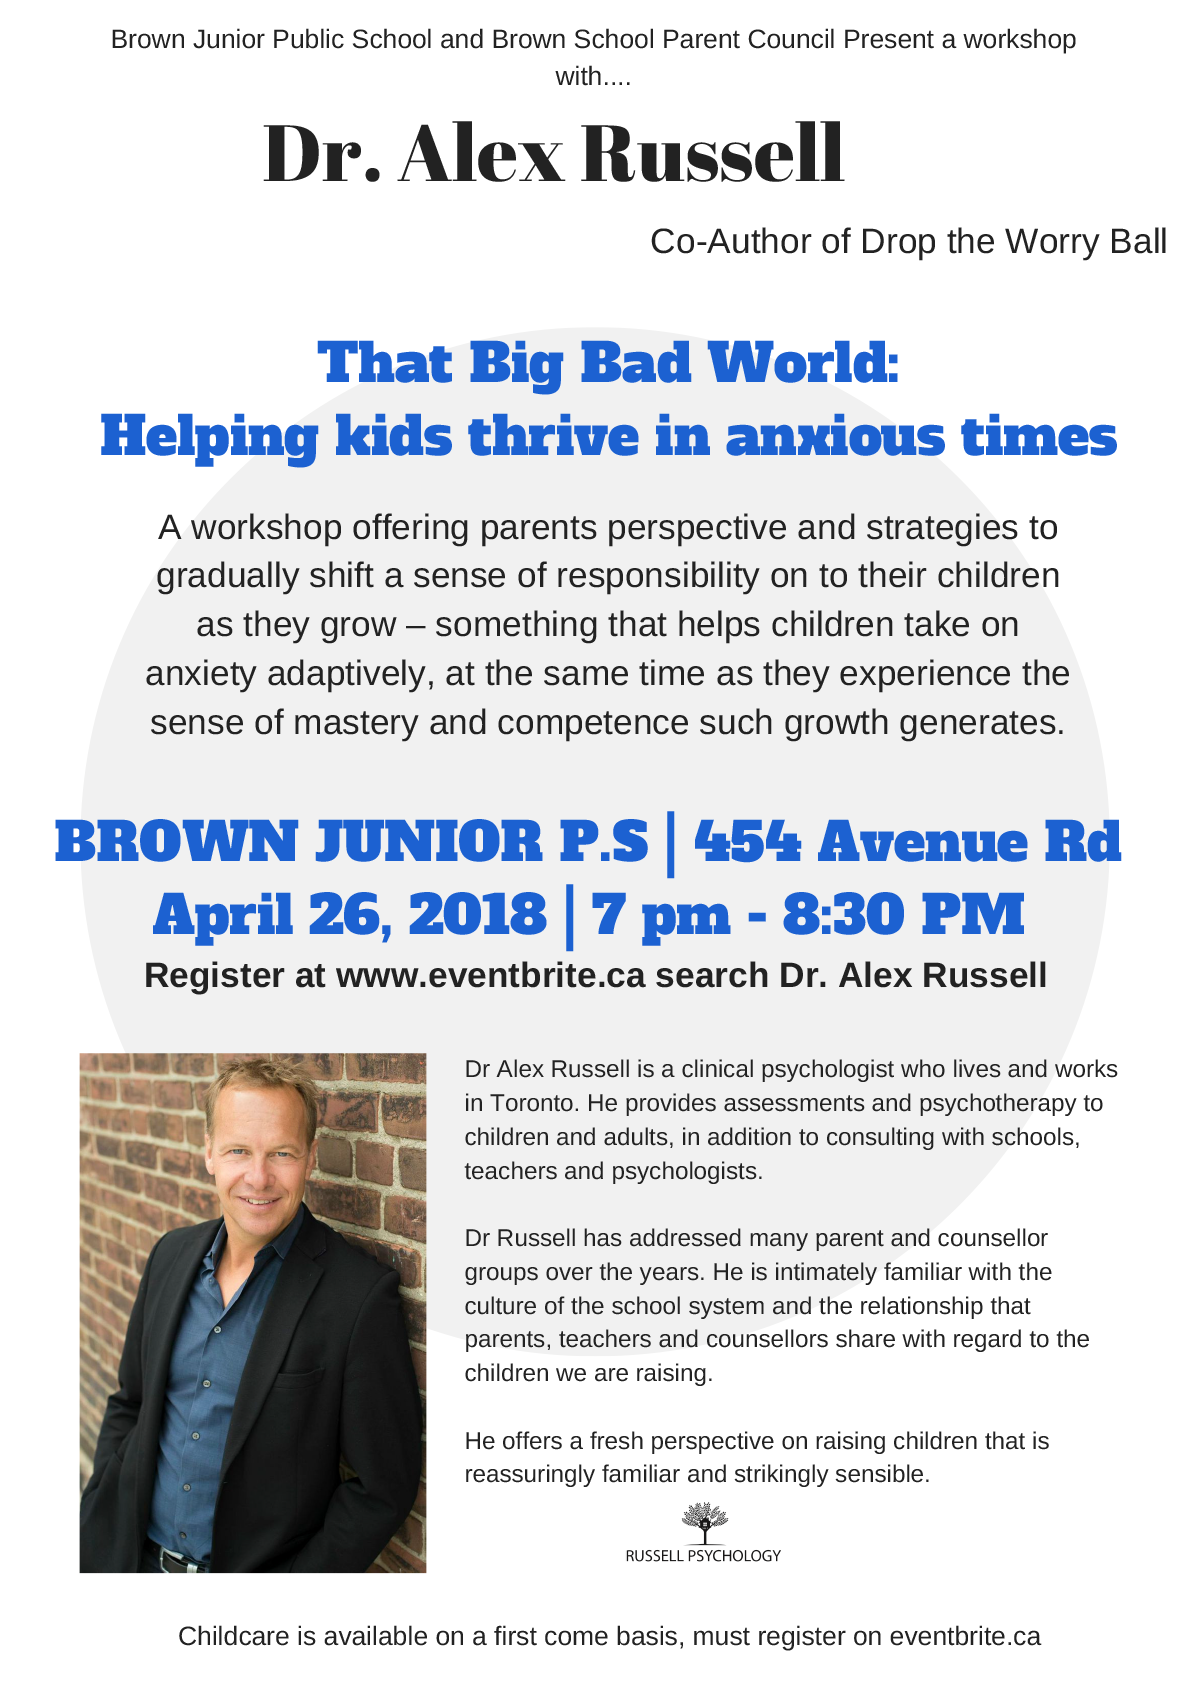 Dr. Alex Russell @ Brown Jr. Public School – April 26